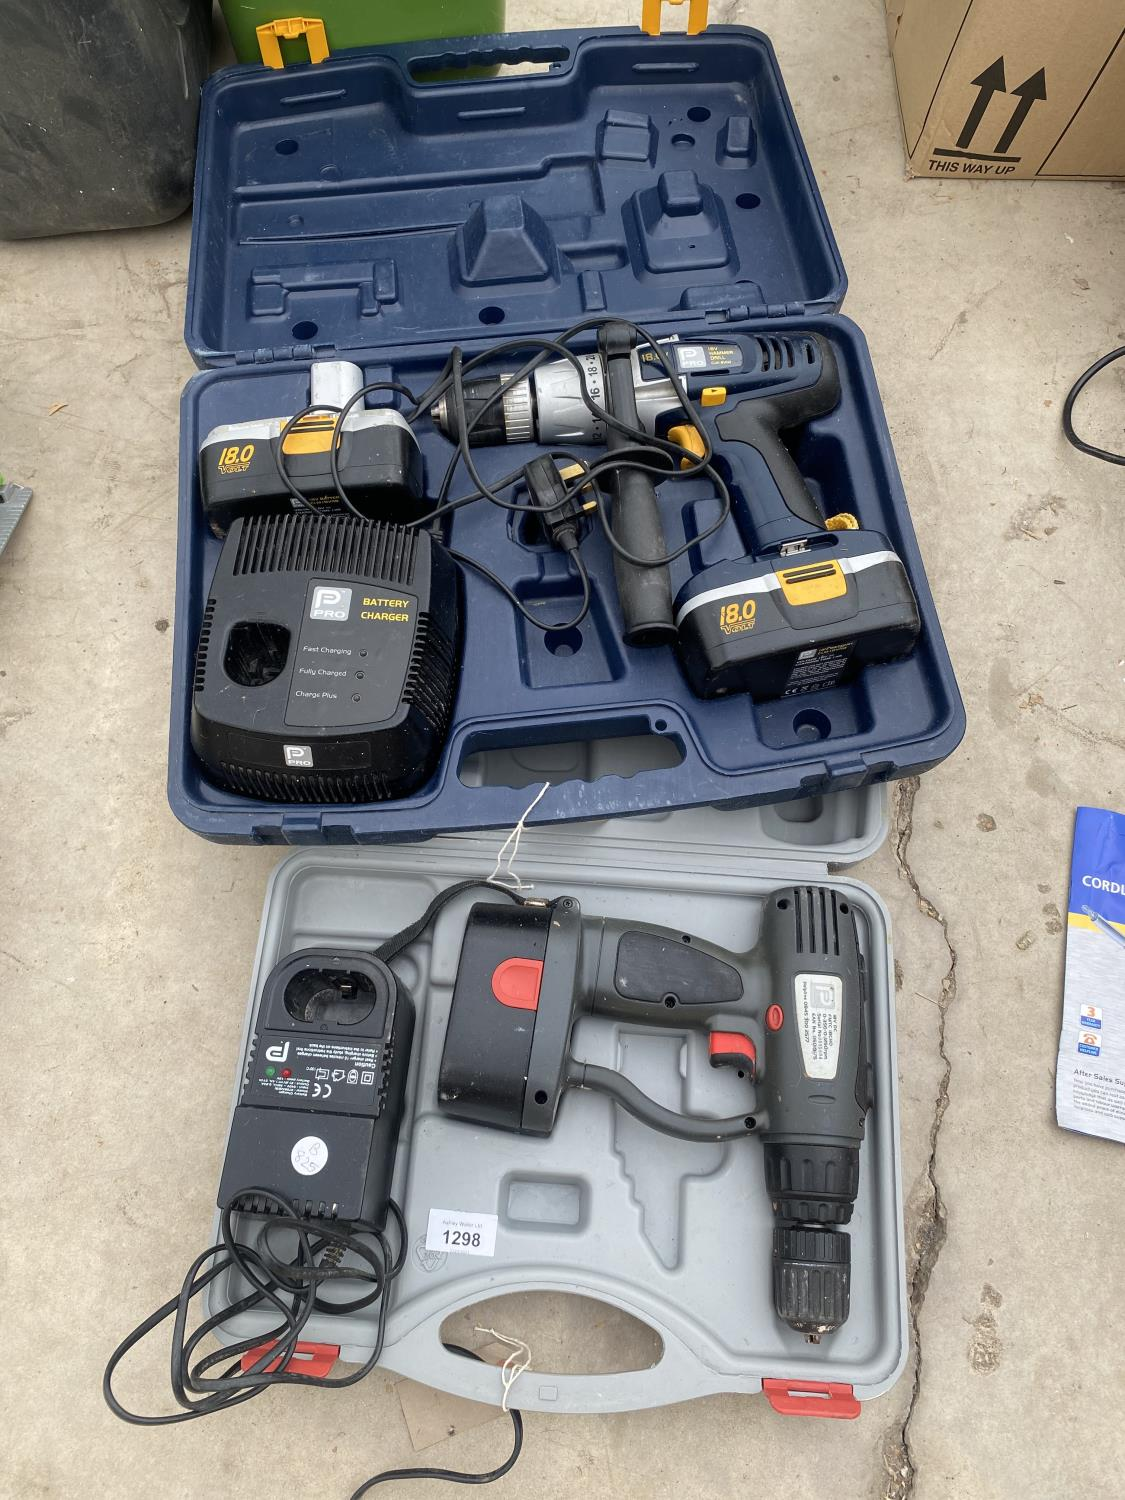 A PRO BATTERY DRILL AND A FURTHER BATTERY DRILL